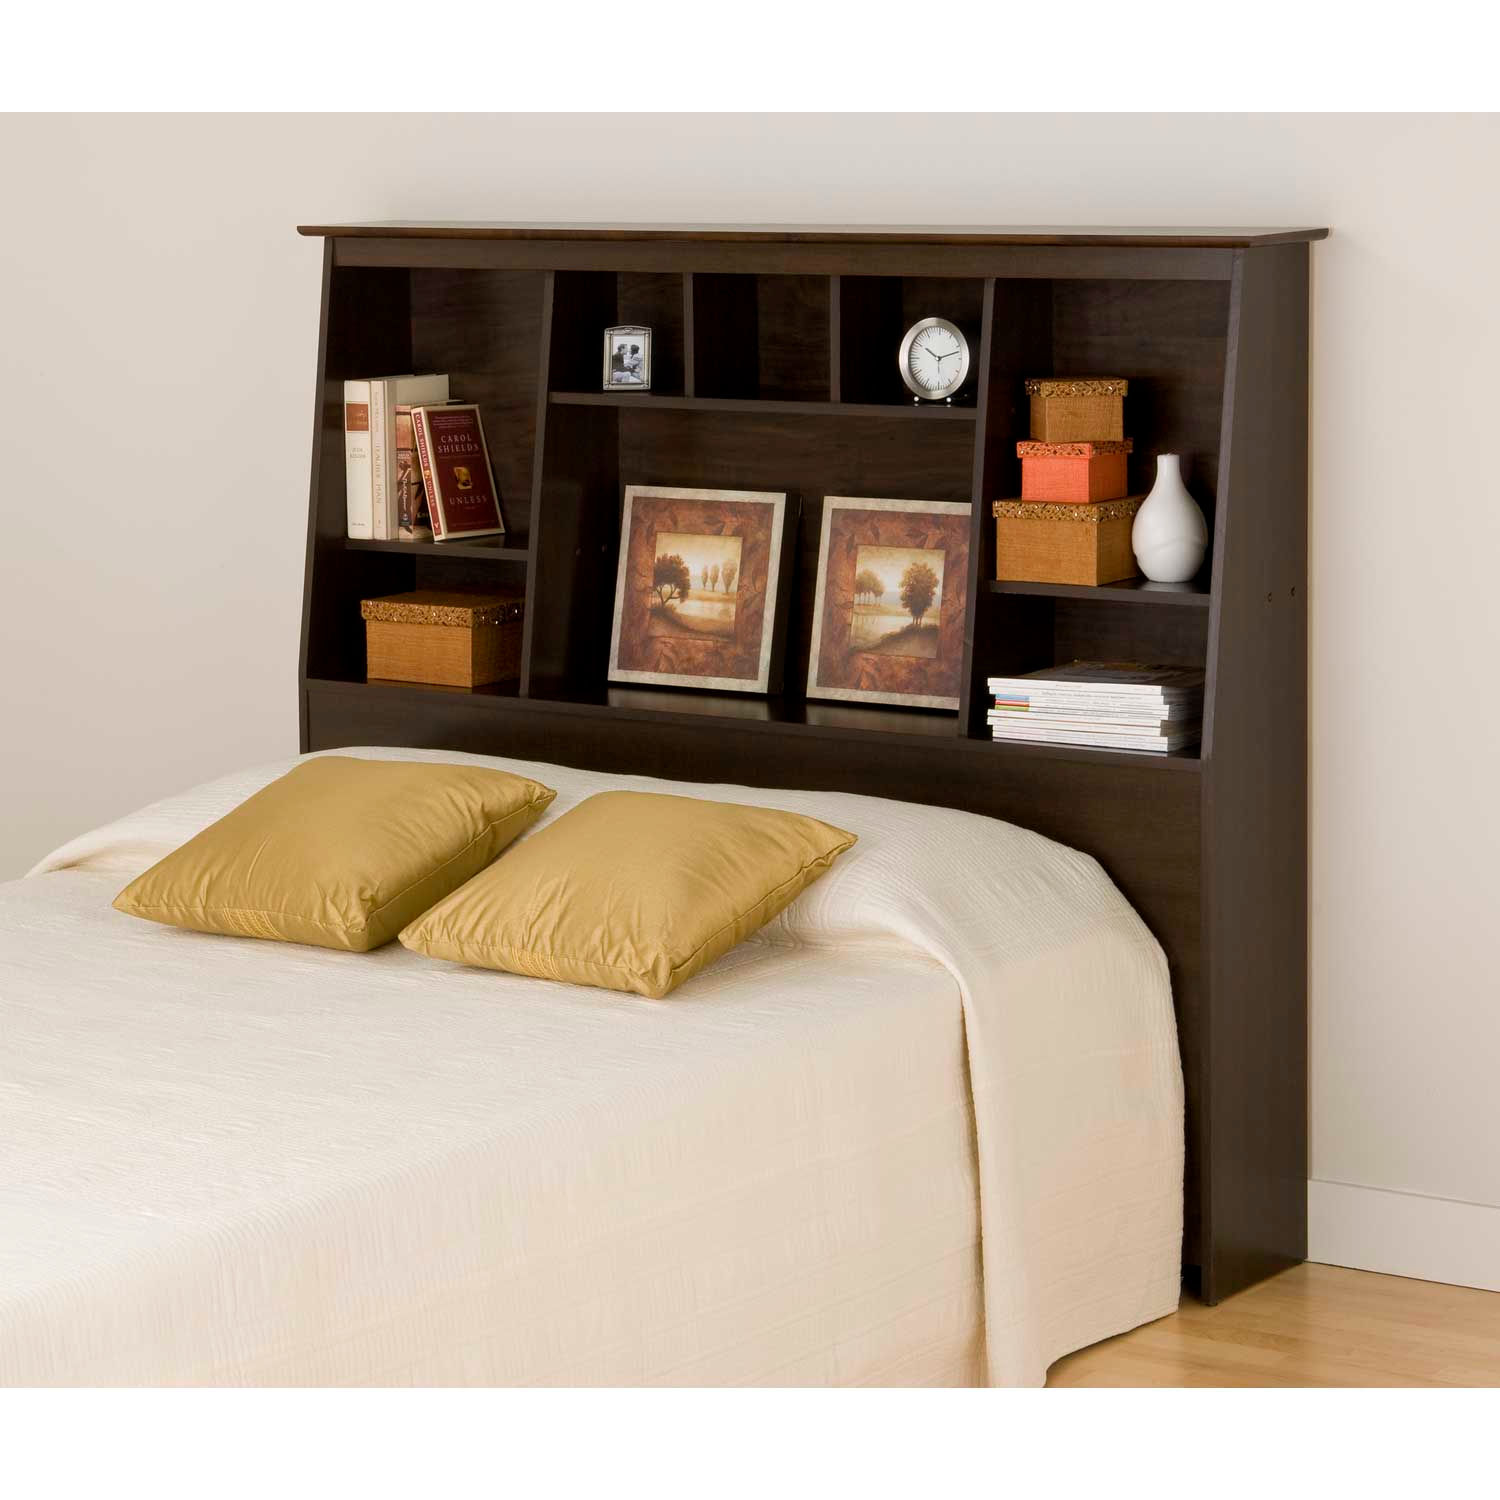 Prepac Manufacturing Espresso Full/Queen Tall Slant-Back Bookcase Headboard